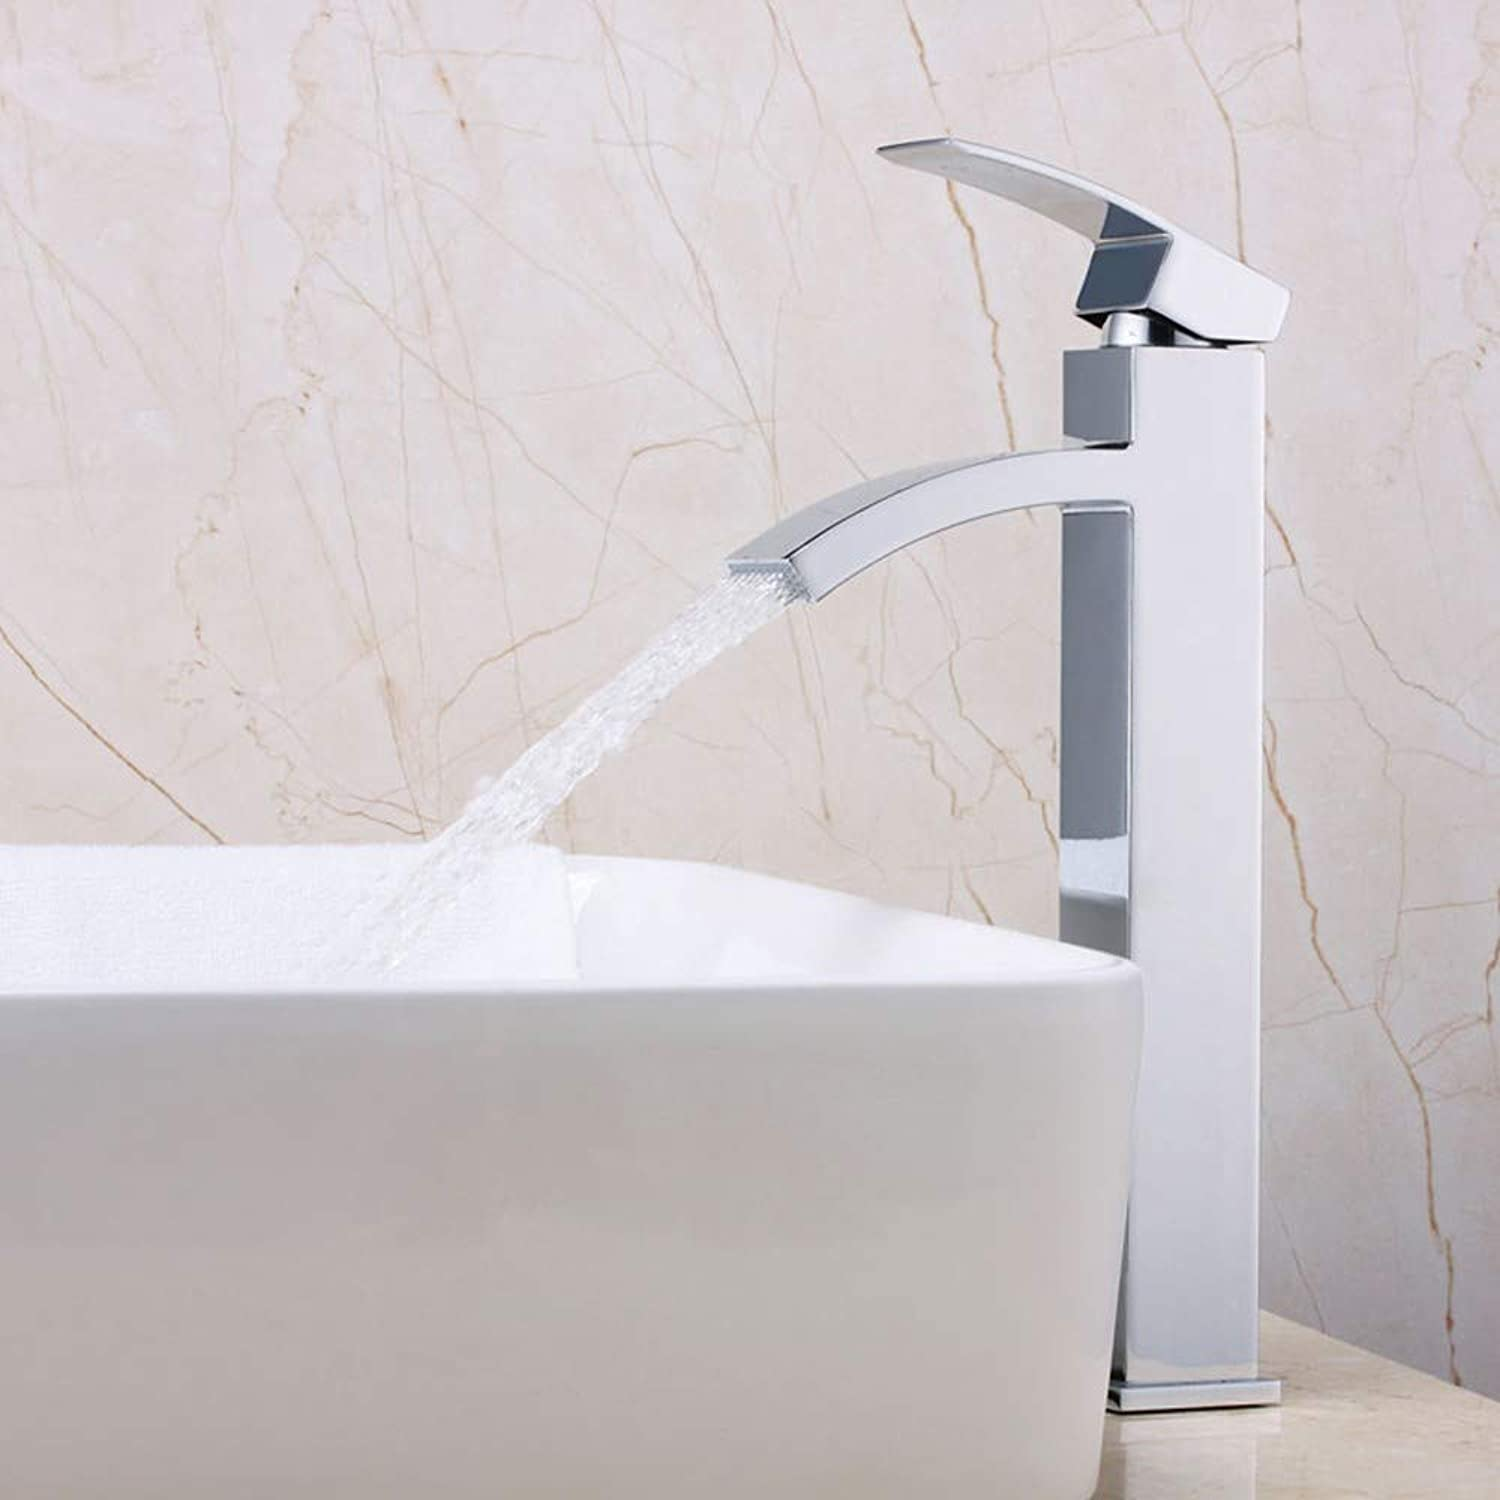 Faucet Heightening Faucet hot and Cold Basin Above Counter Basin Faucet washbasin Faucet Above Counter Basin Faucet